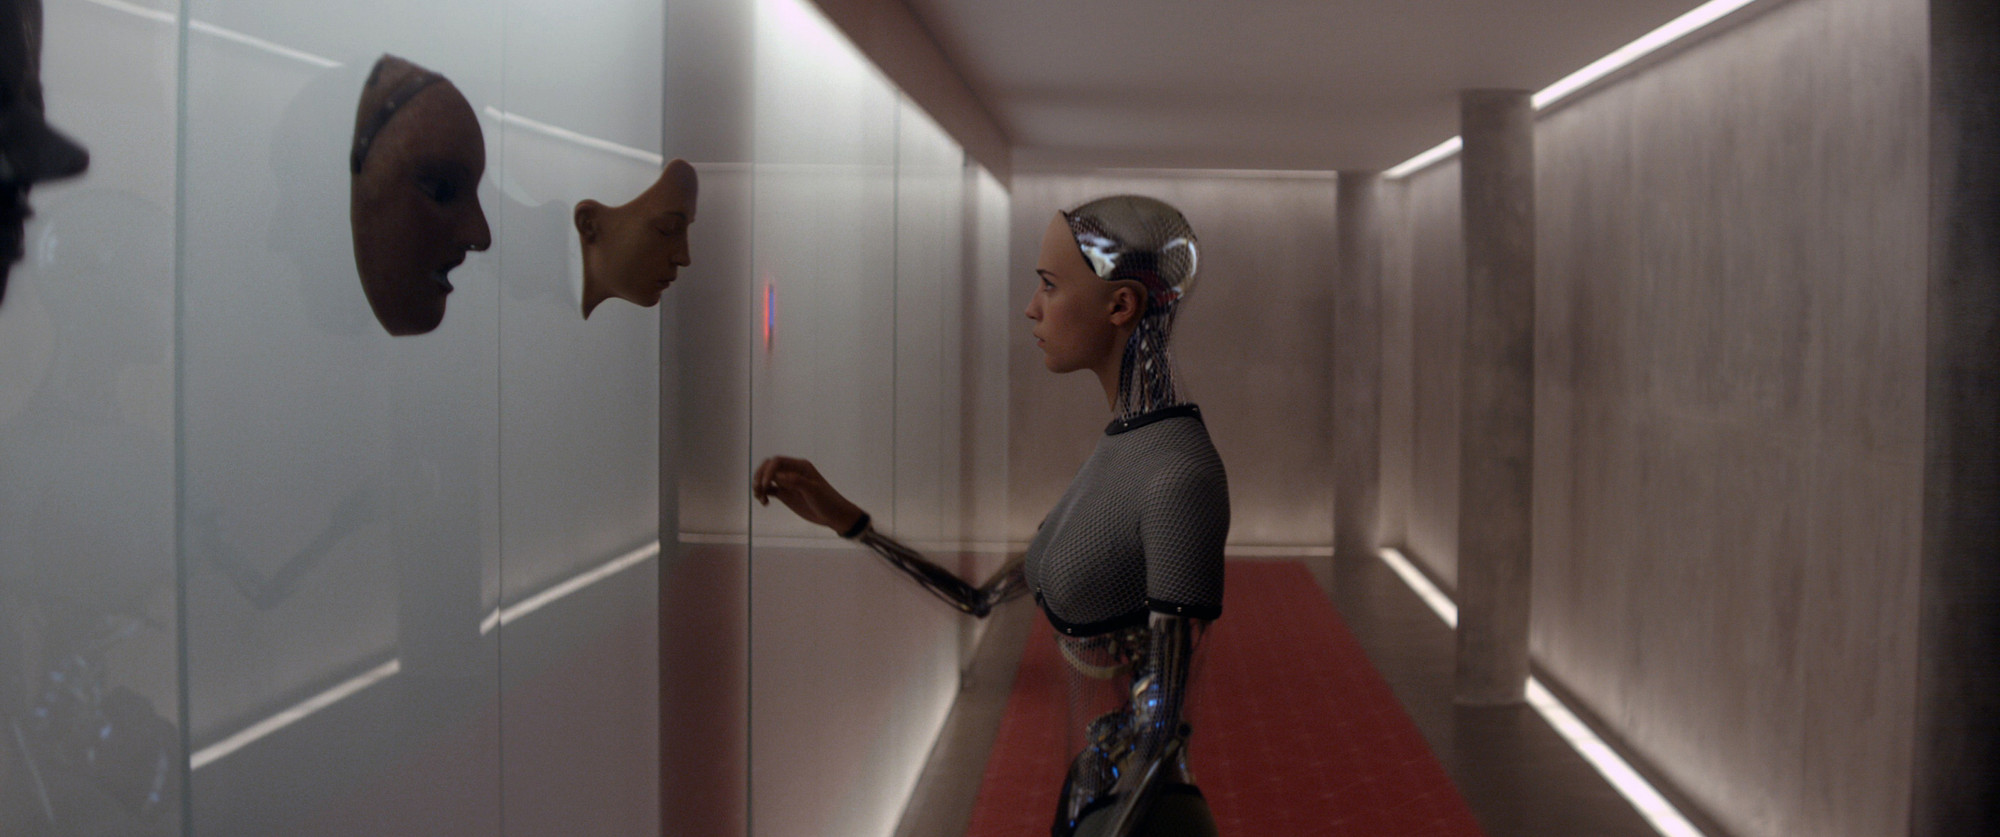 Ex Machina. 2015. Great Britain. Directed by Alex Garland. Courtesy Universal Pictures/Photofest. © Universal Pictures